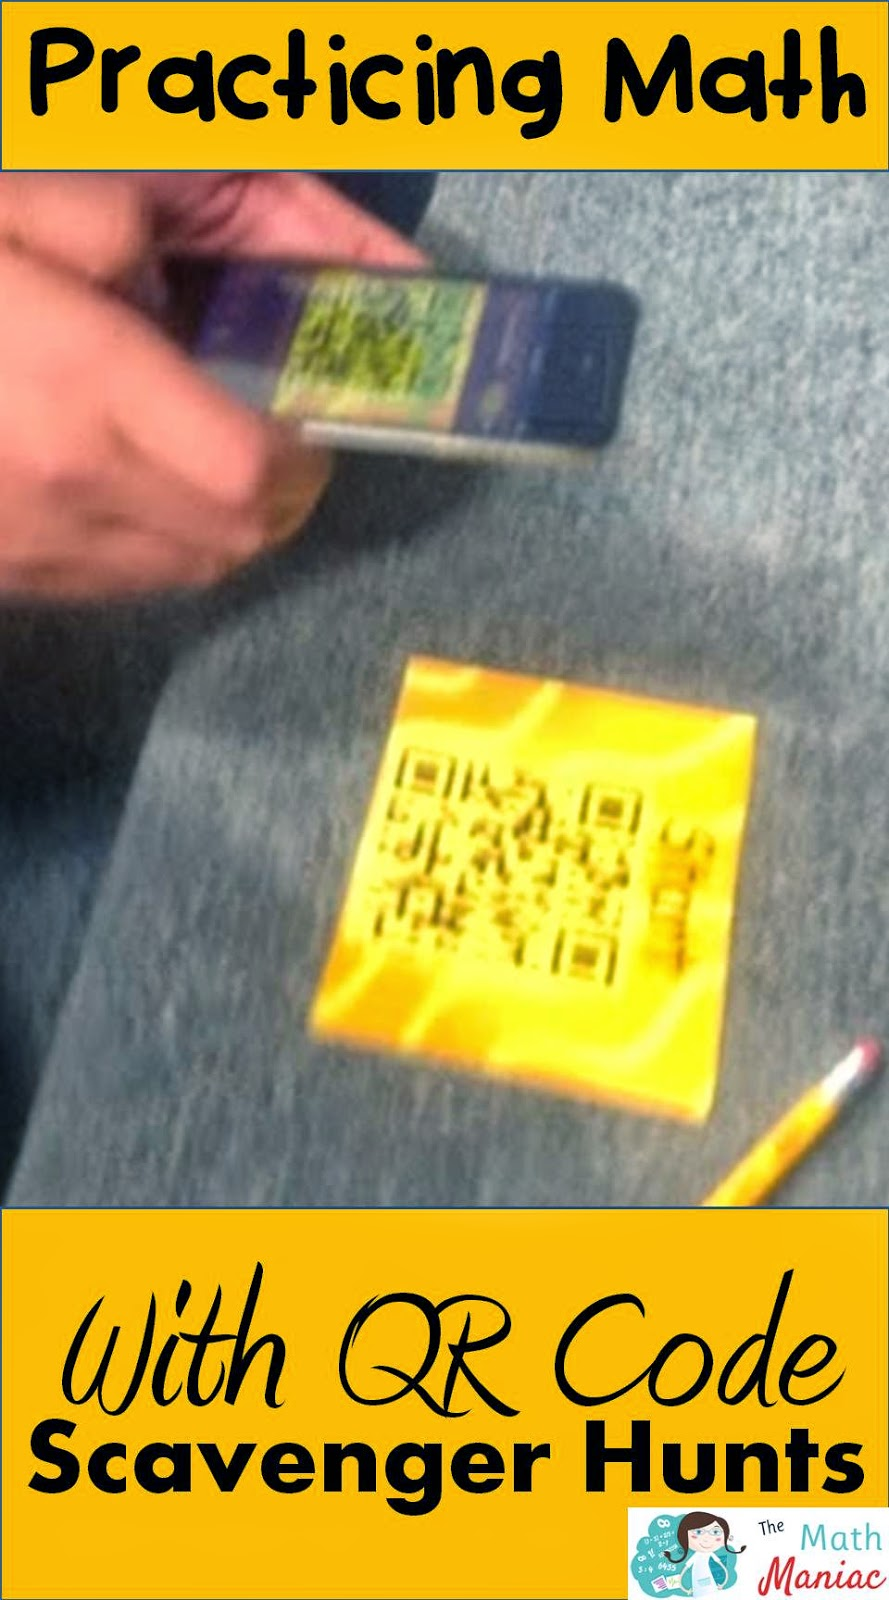 The Elementary Math Maniac: QR Code Scavenger Hunts: Using Technology to Practice Math